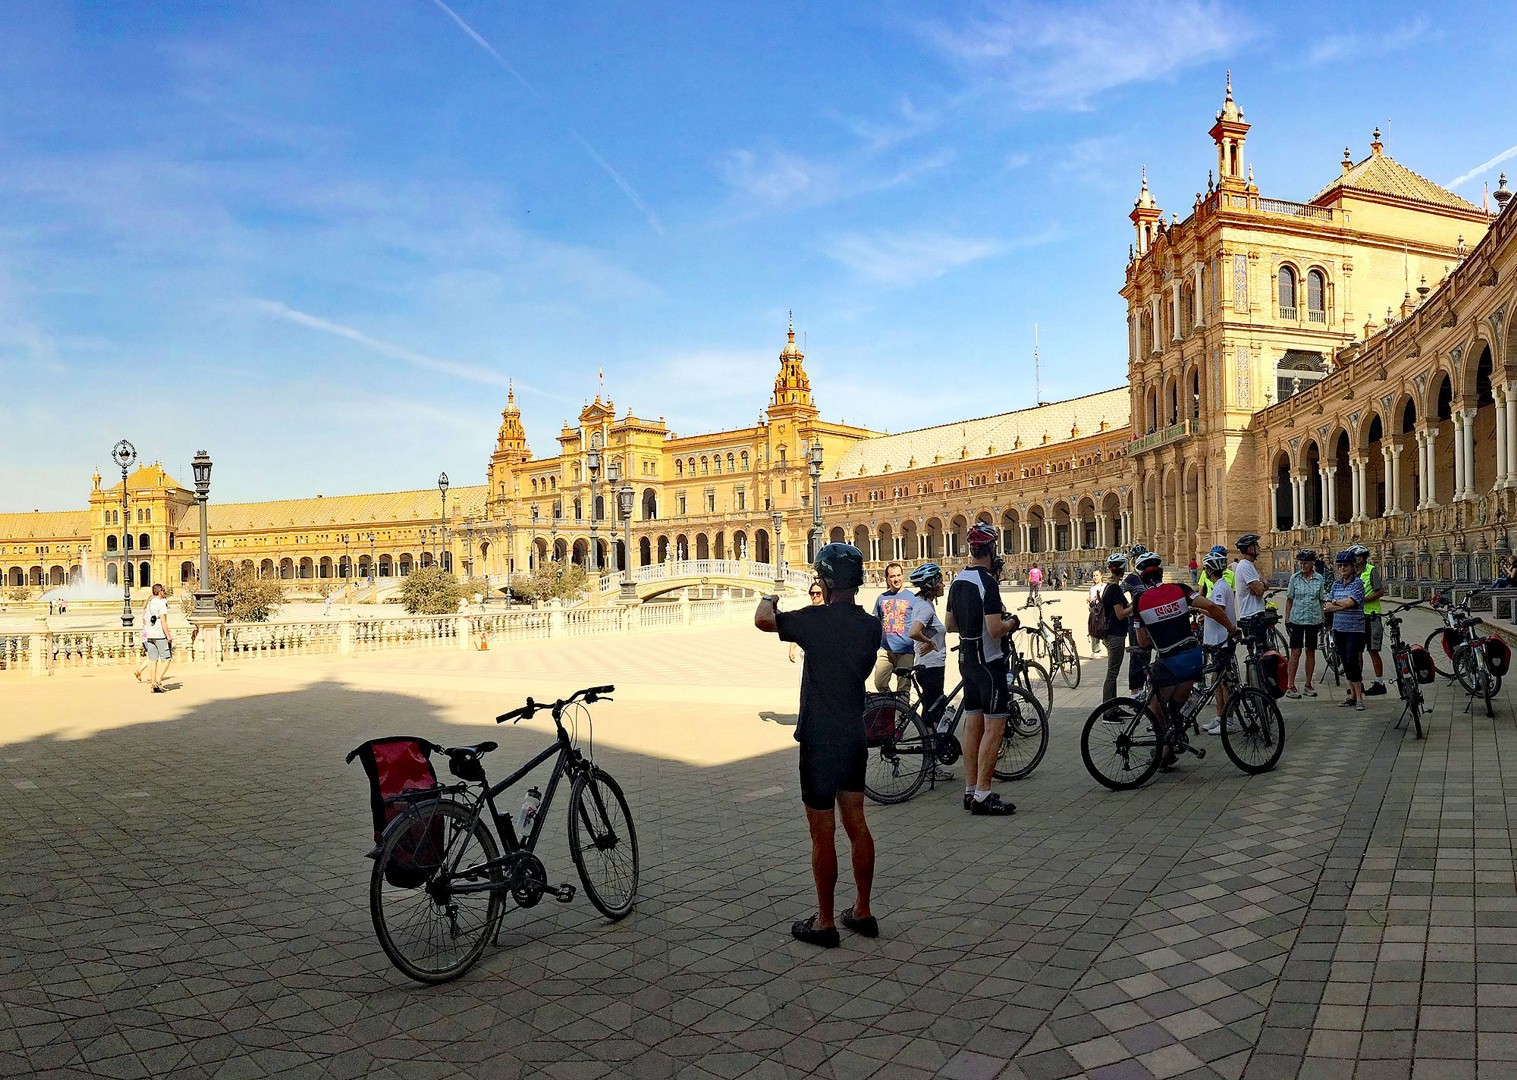 self-guided-leisure-cycling-holiday-granada-to-seville-spain.jpg - Southern Spain - Granada to Seville - Self-Guided Leisure Cycling Holiday - Leisure Cycling